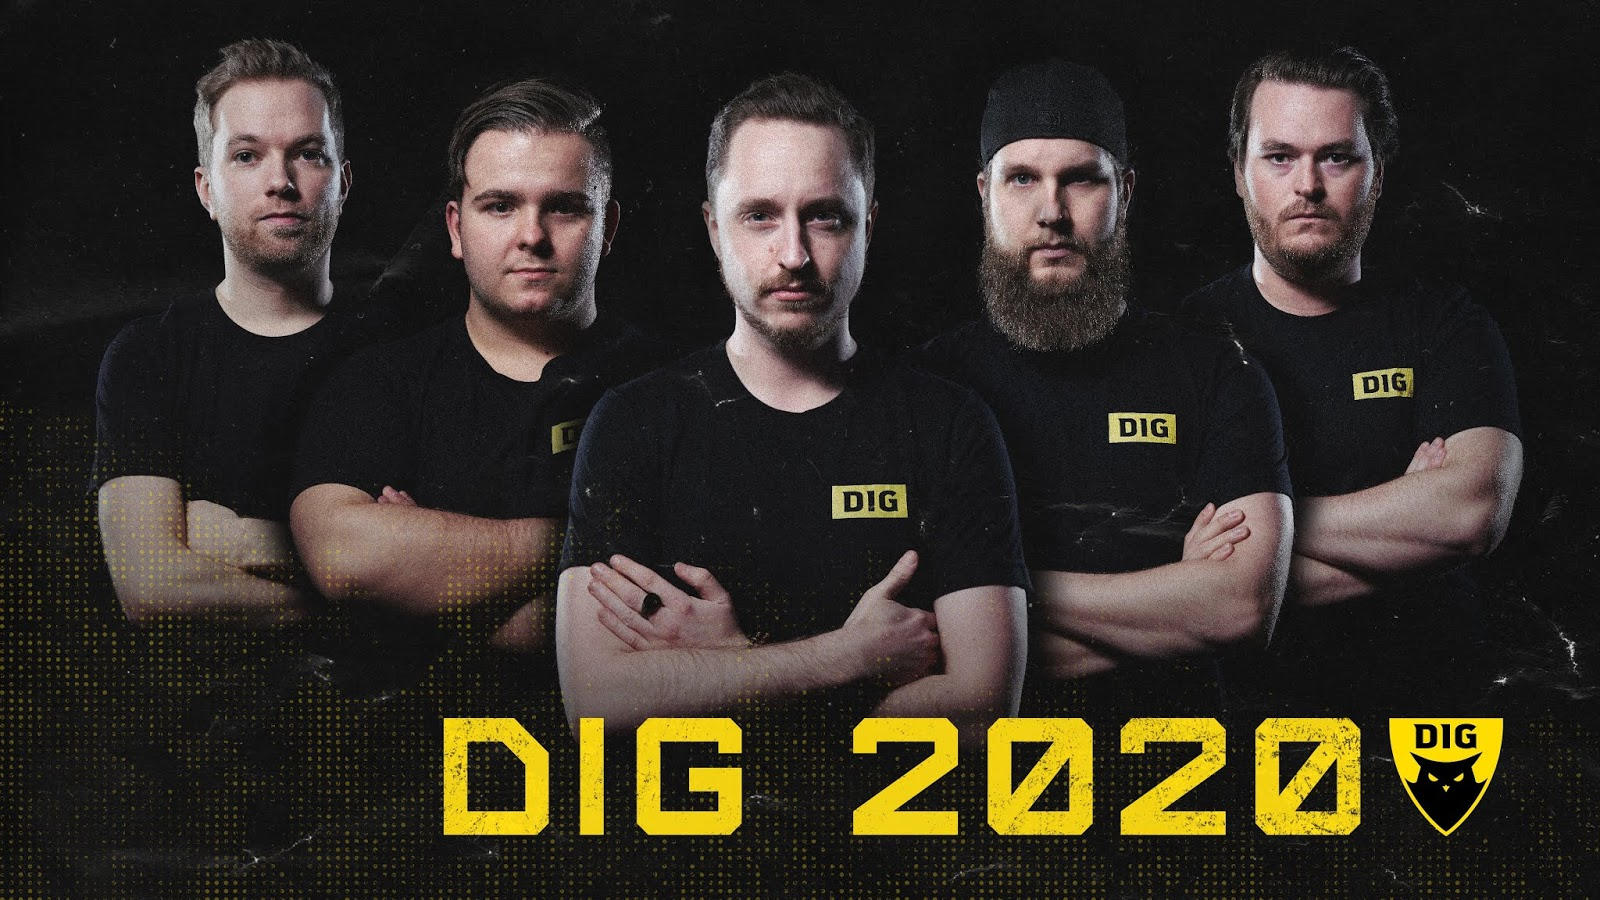 Dignitas 2020 CS:GO roster of Xizt, hallzerk, Get_Right, F0rest, and Friberg